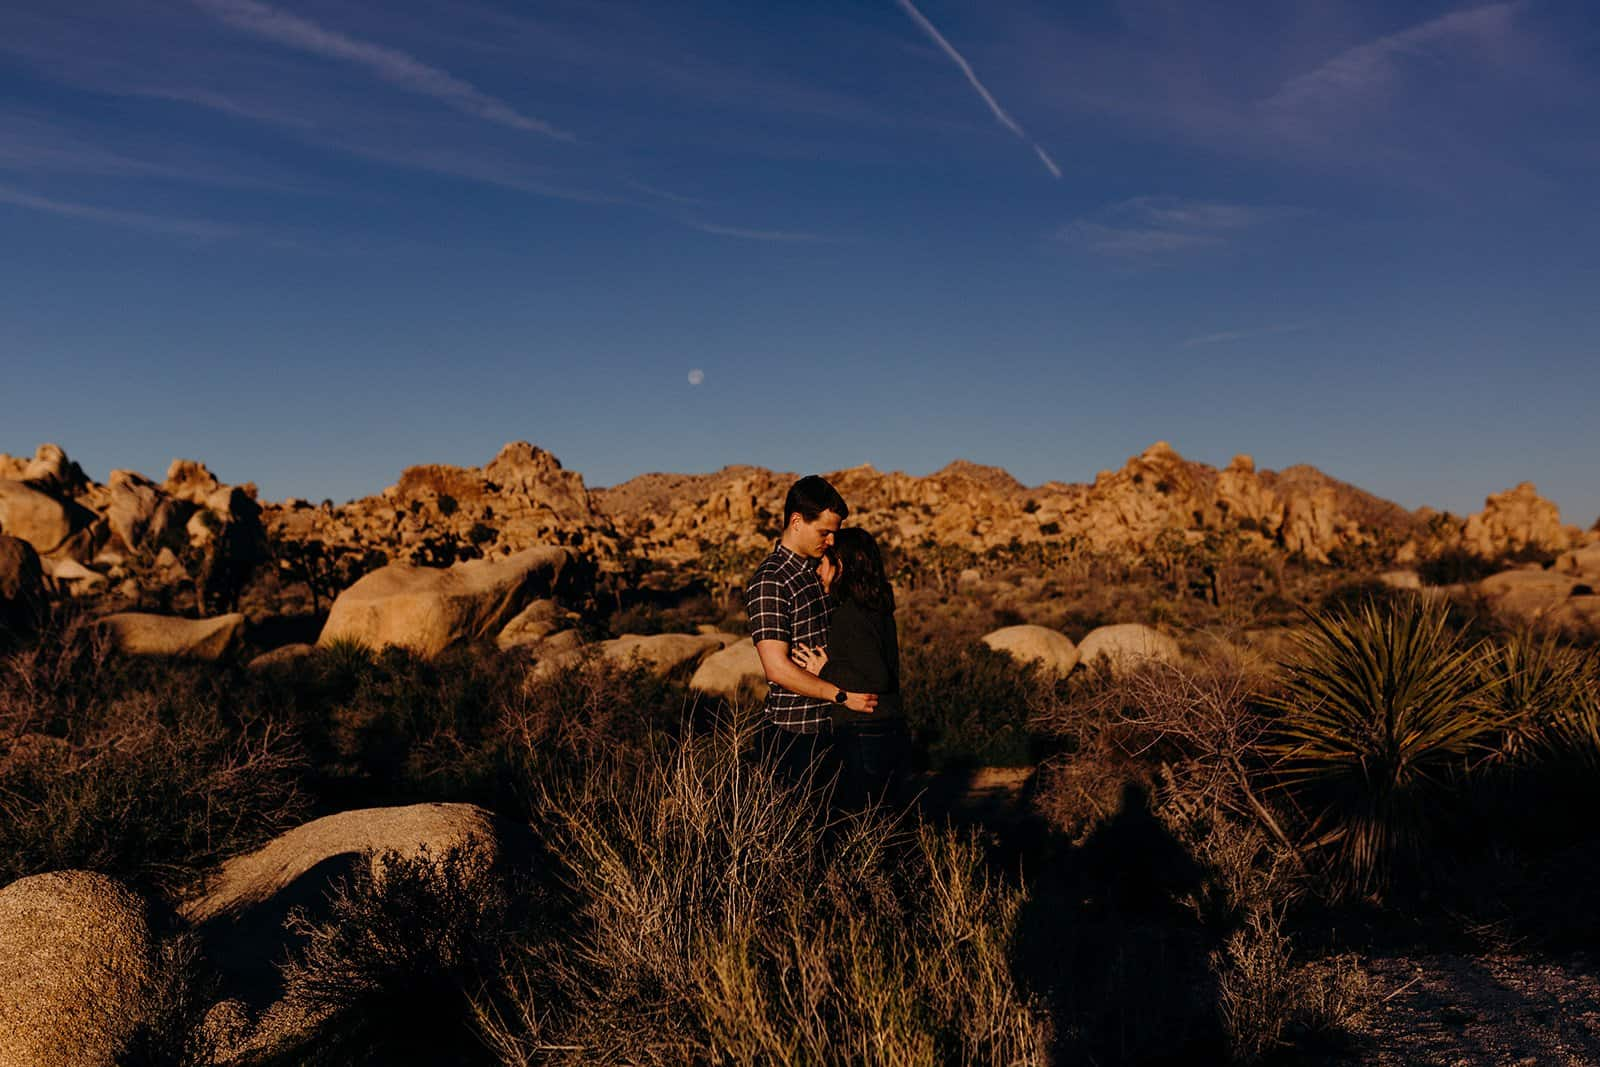 Sunrise over Joshua Tree National park with couple embracing